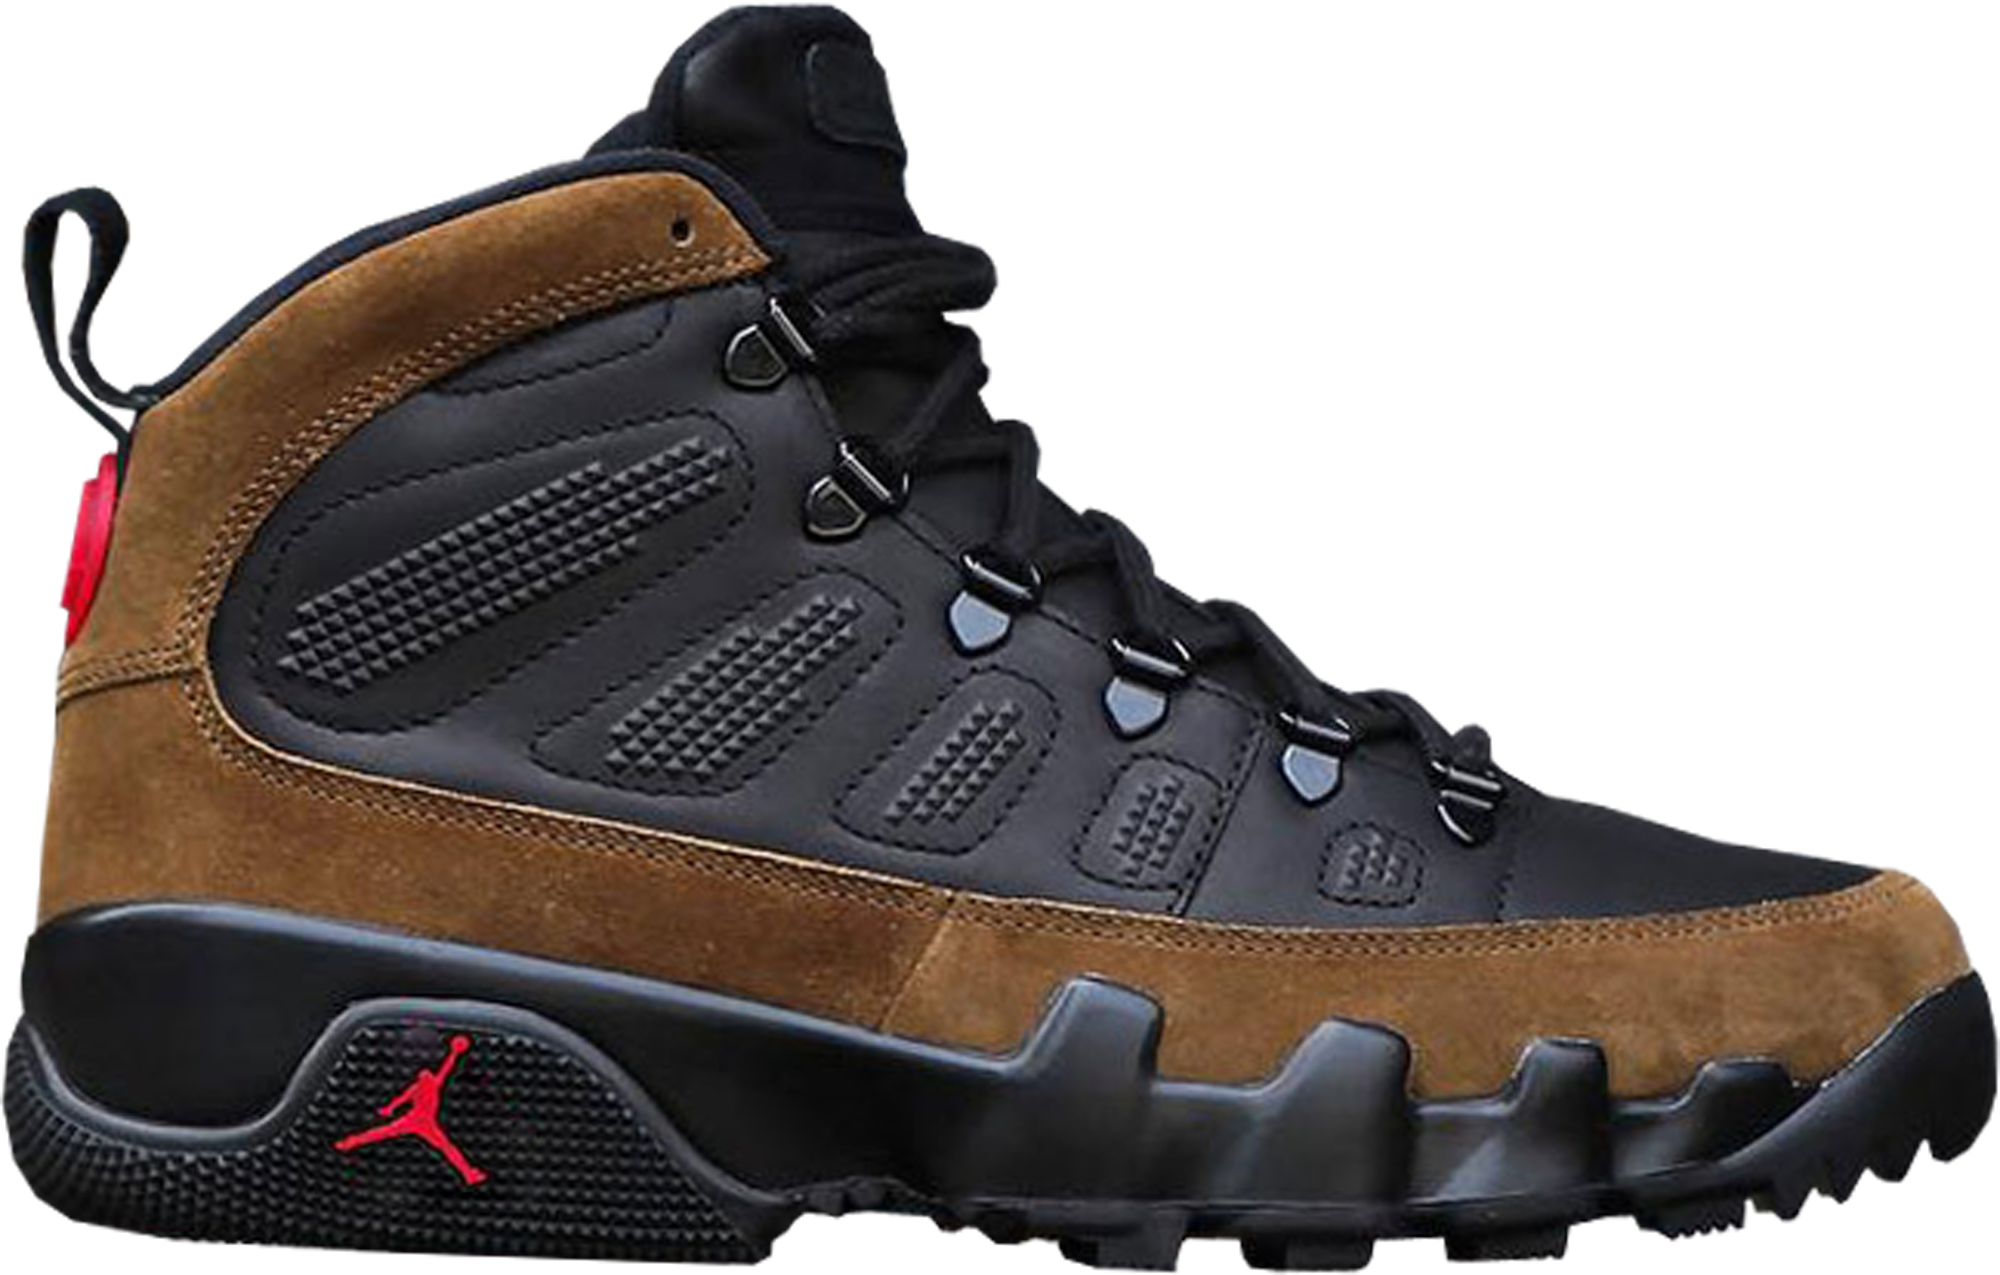 air jordan ix retro boot nrg black & light gums stargate